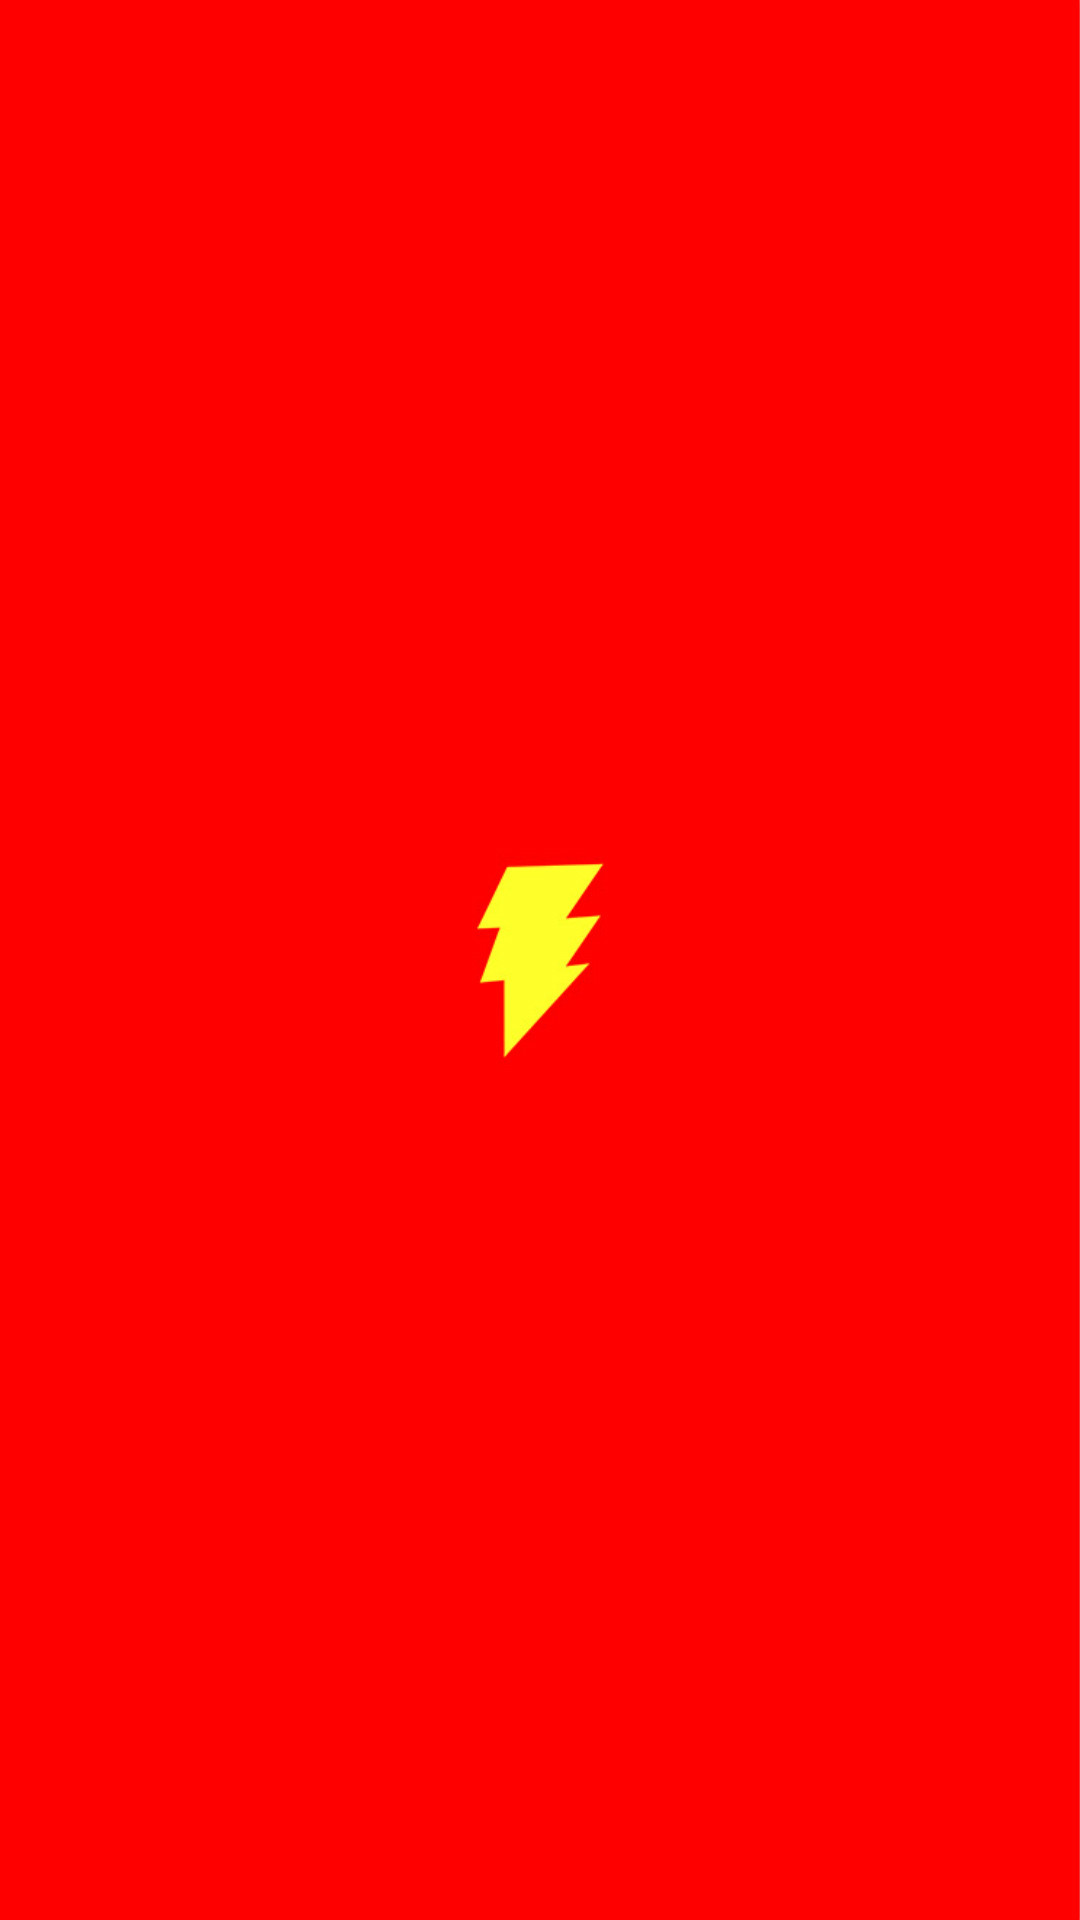 the flash wallpaper hd, the flash mobile wallpaper